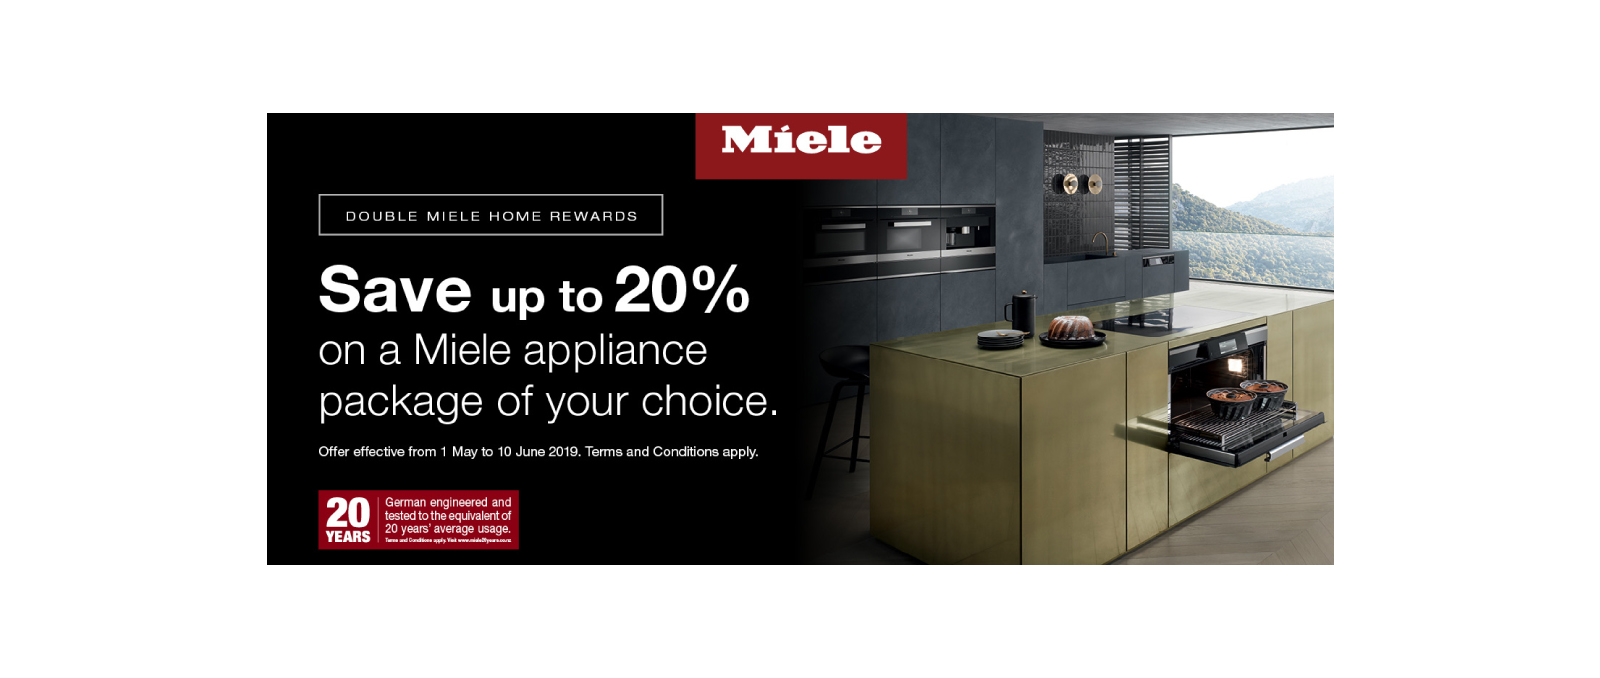 Products | Page 14 of 24 | Mason Appliances